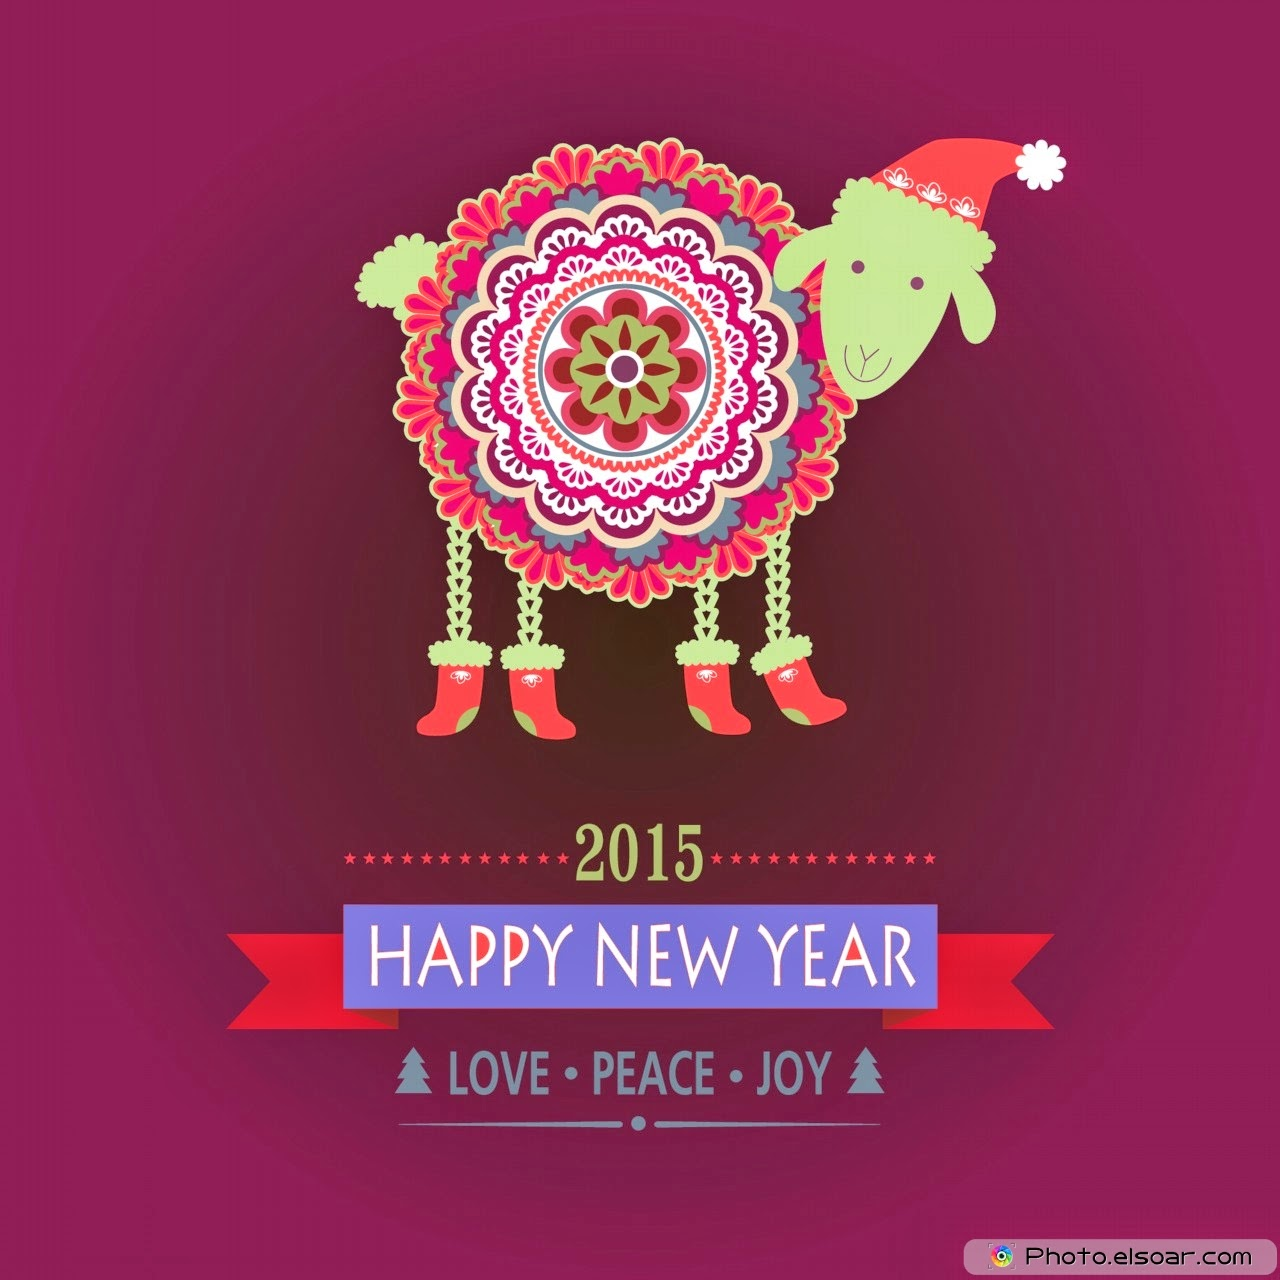 Happy Chinese New Year 2015 Image